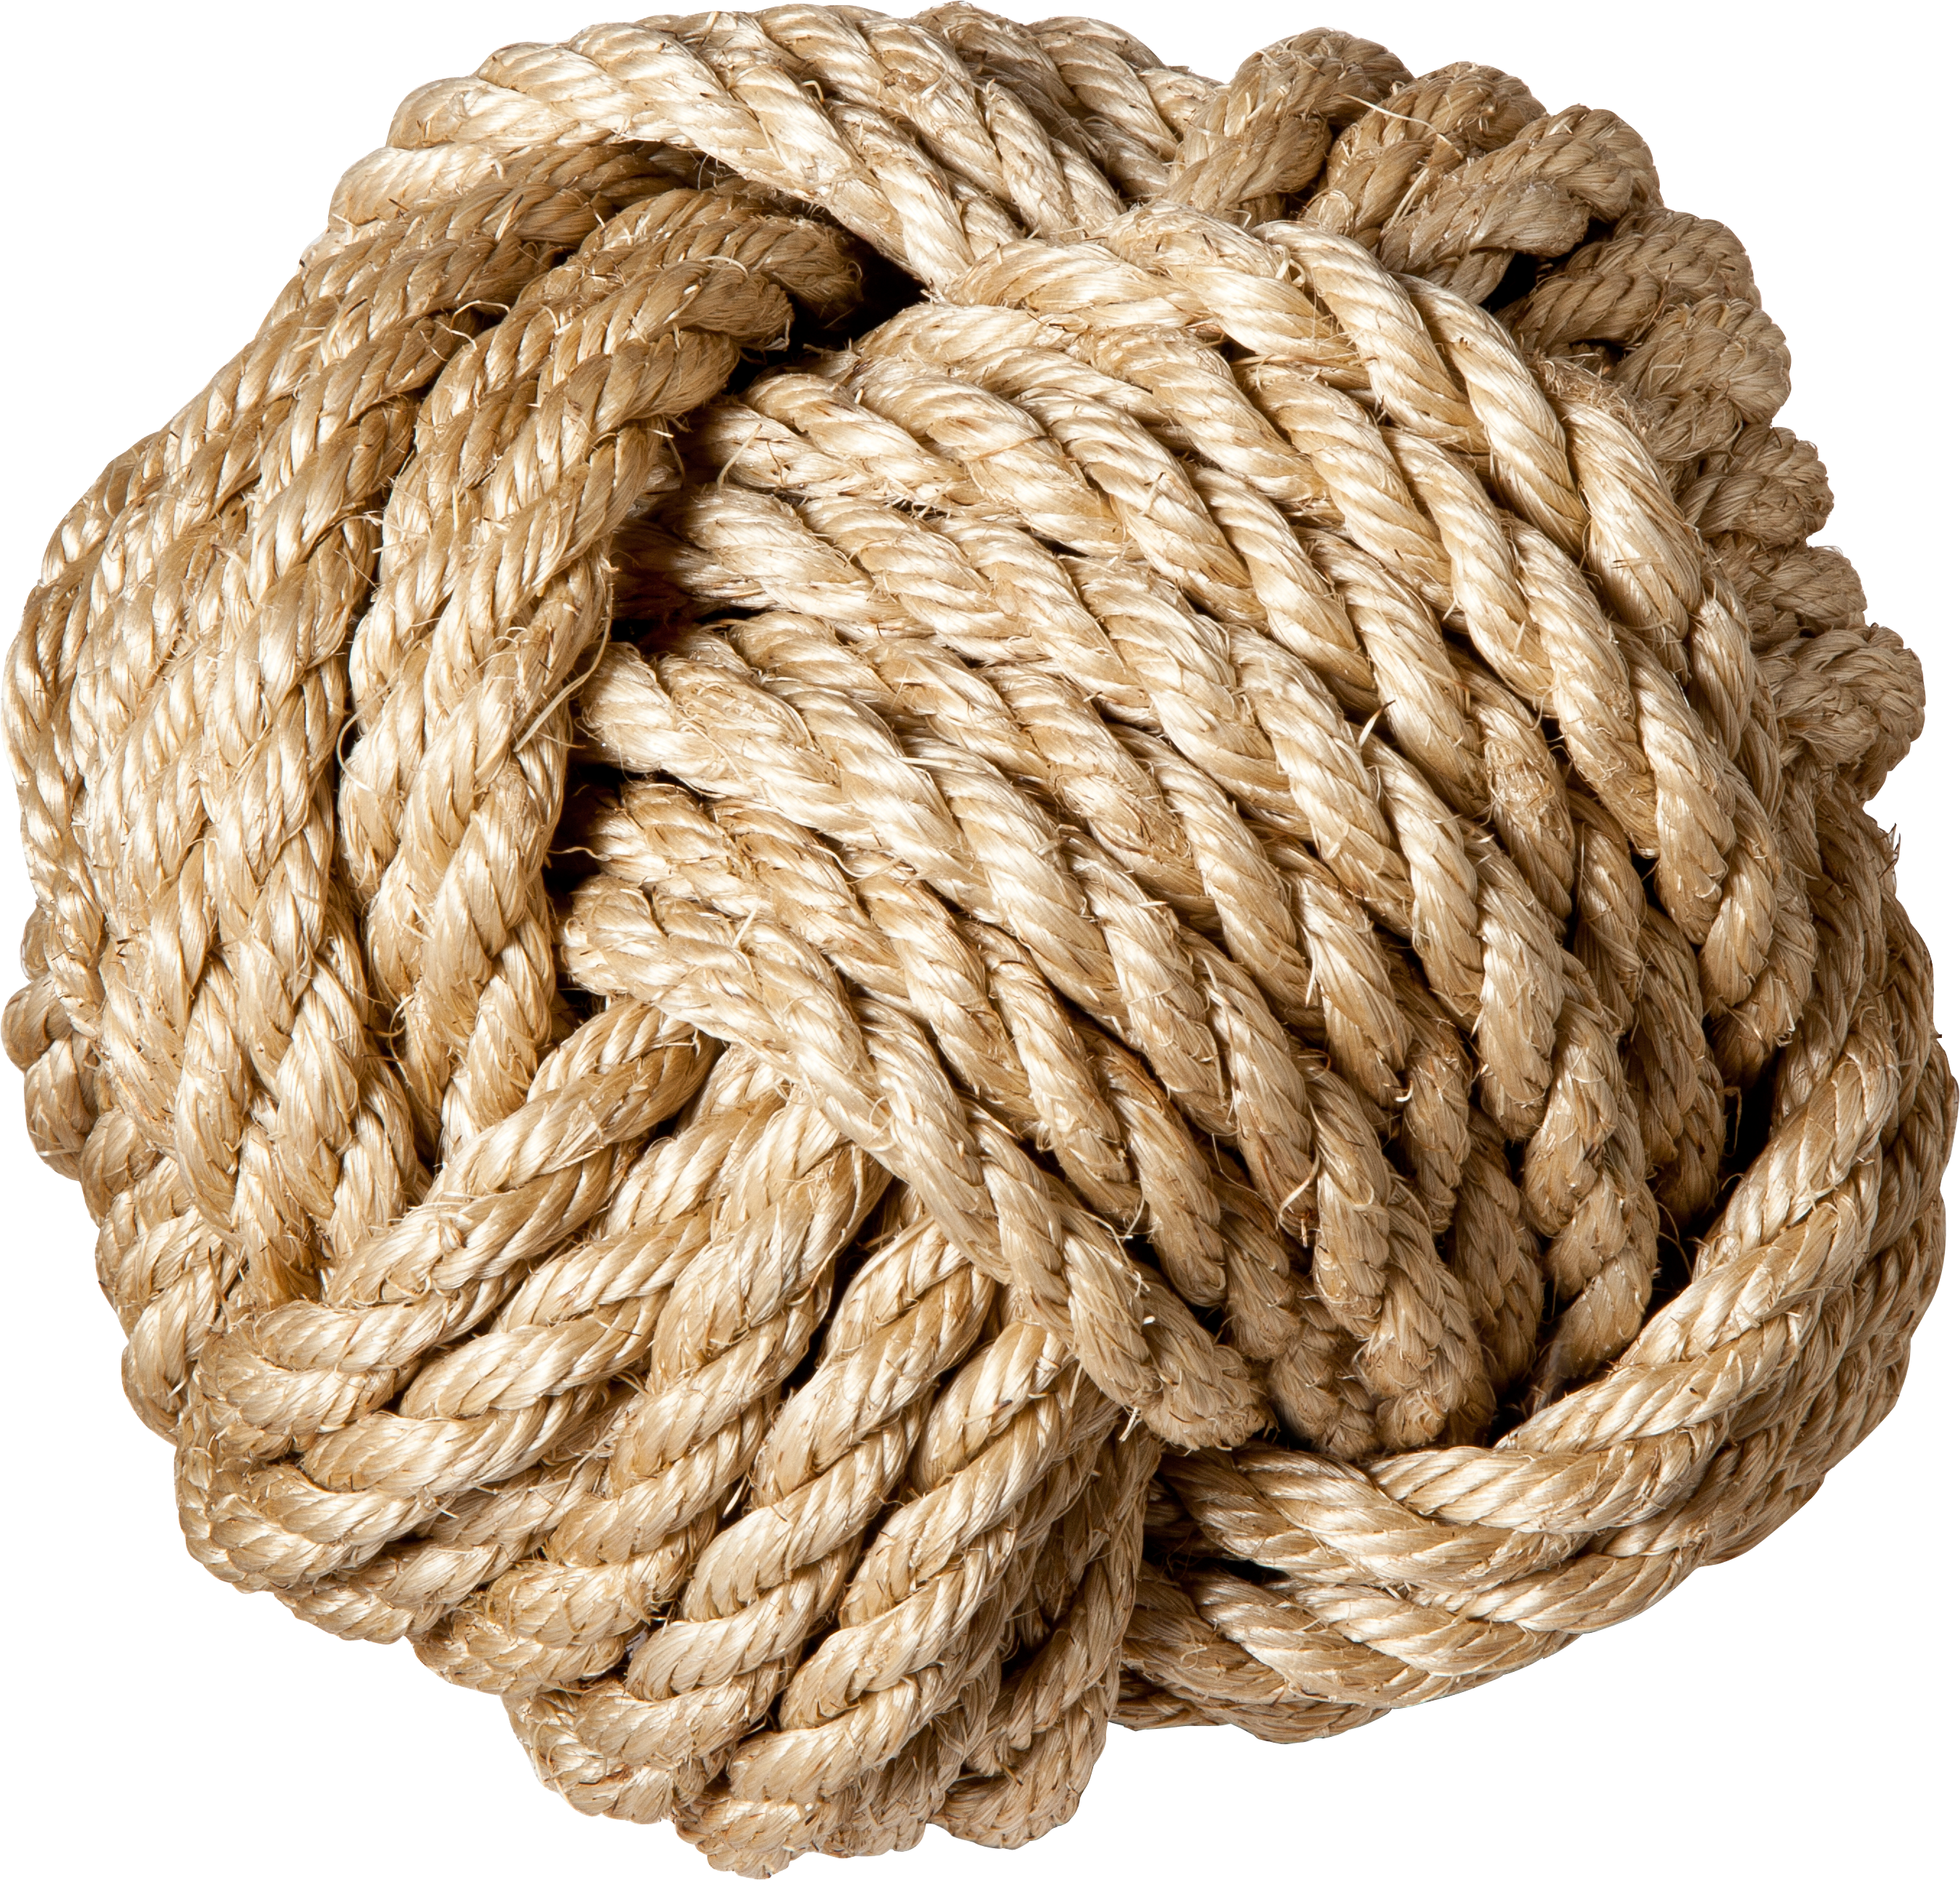 Heart rope knot clipart jpg black and white library Rope PNG images free download jpg black and white library